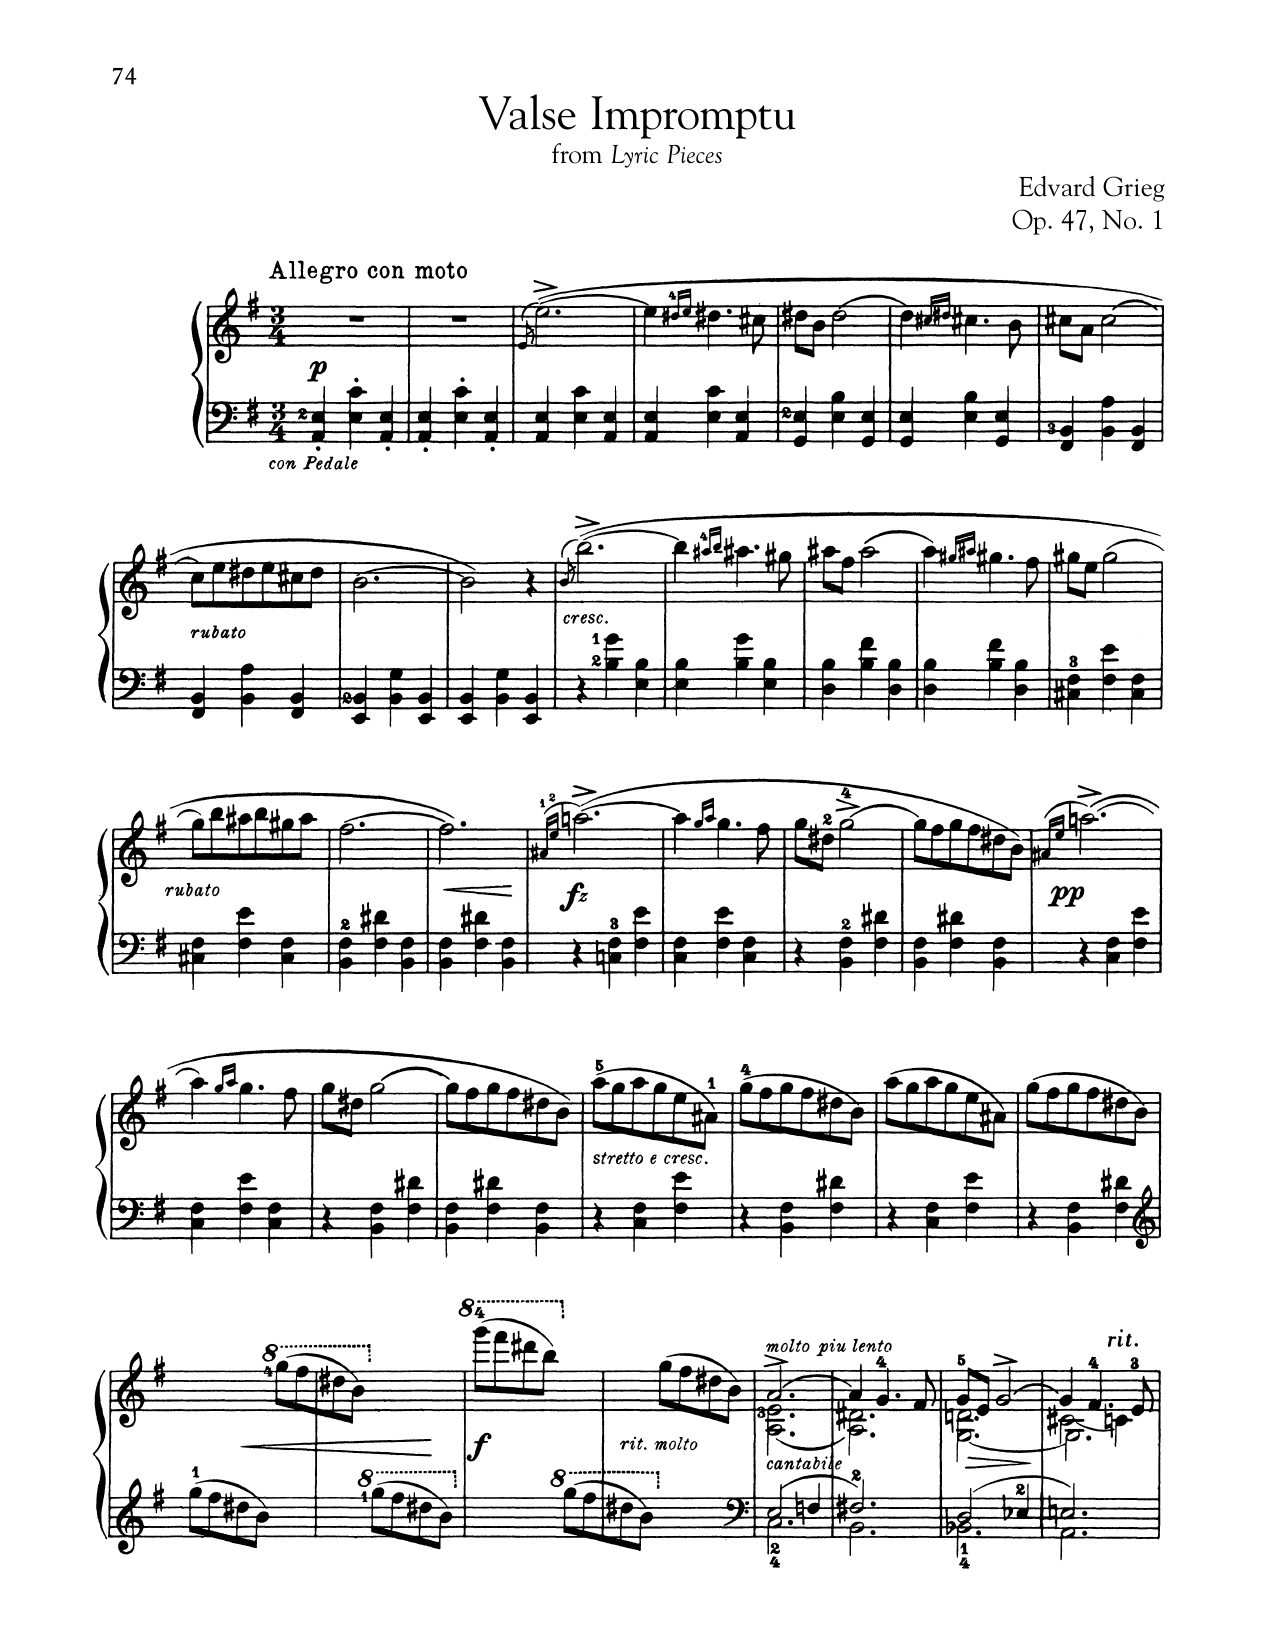 Edvard Grieg Valse Impromptu, Op. 47, No. 1 sheet music notes and chords